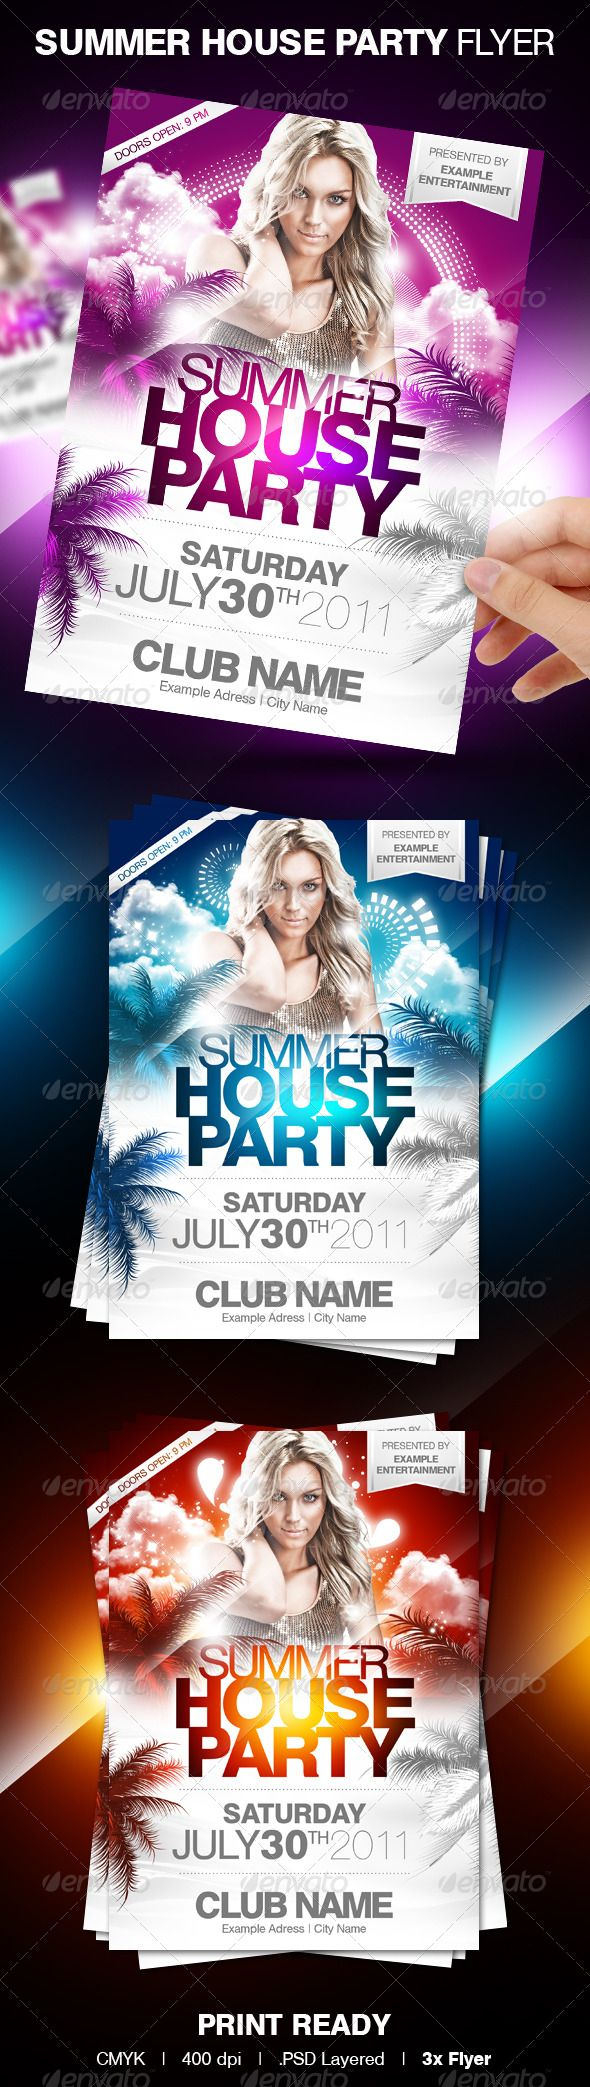 best images about party psd flyer templates 17 best images about party psd flyer templates nightclub and jungle party